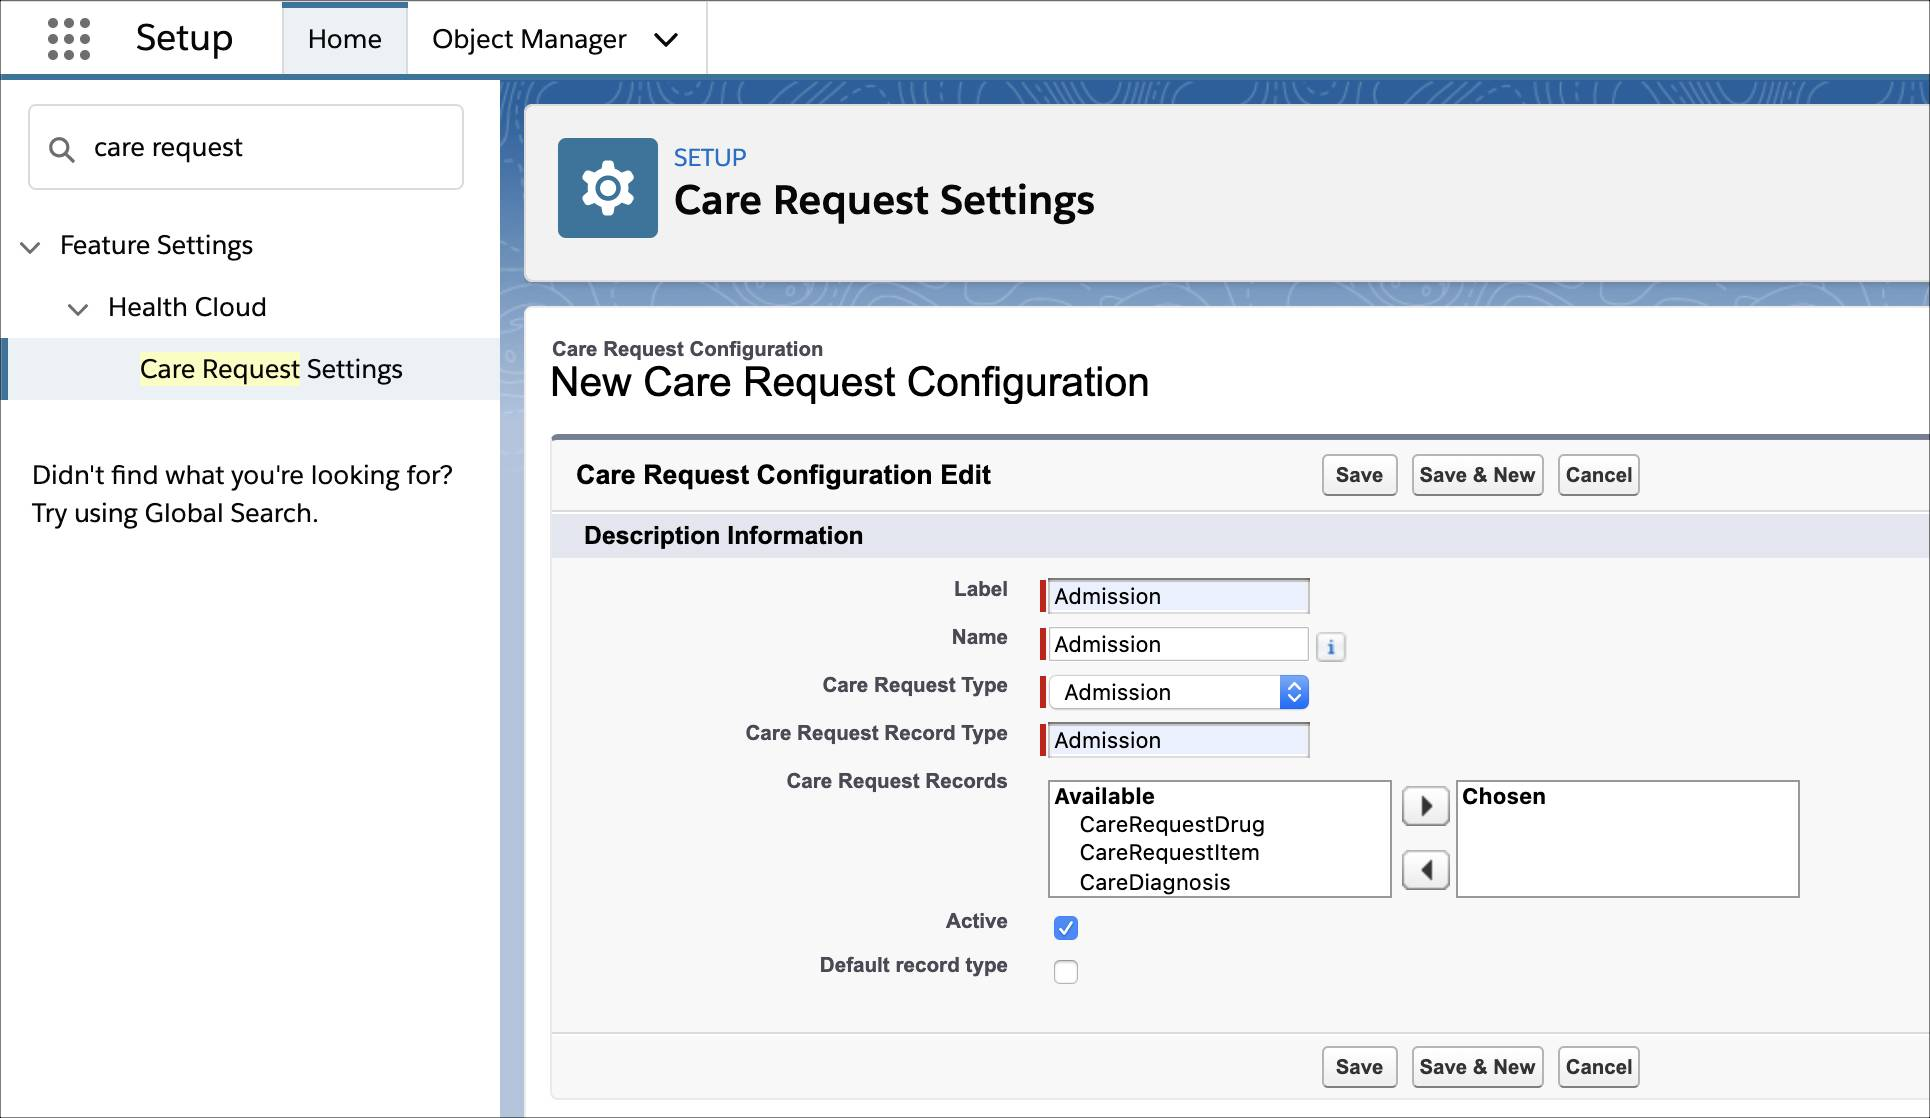 The Care Request Configuration page showing the fields you can use to add a care request configuration.